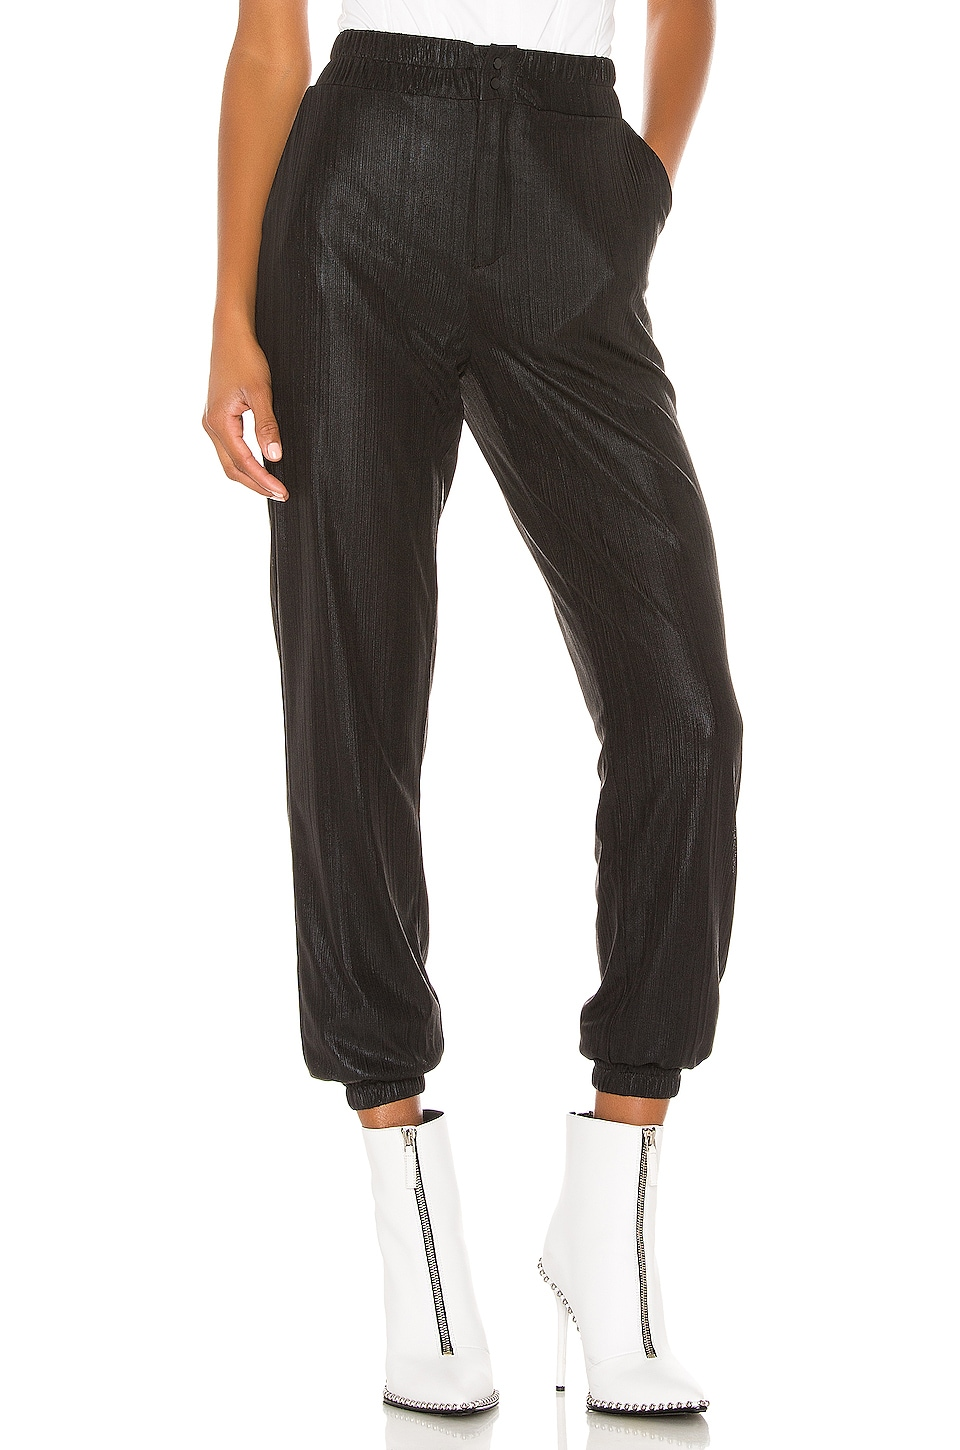 h:ours Johnny Pants in Black